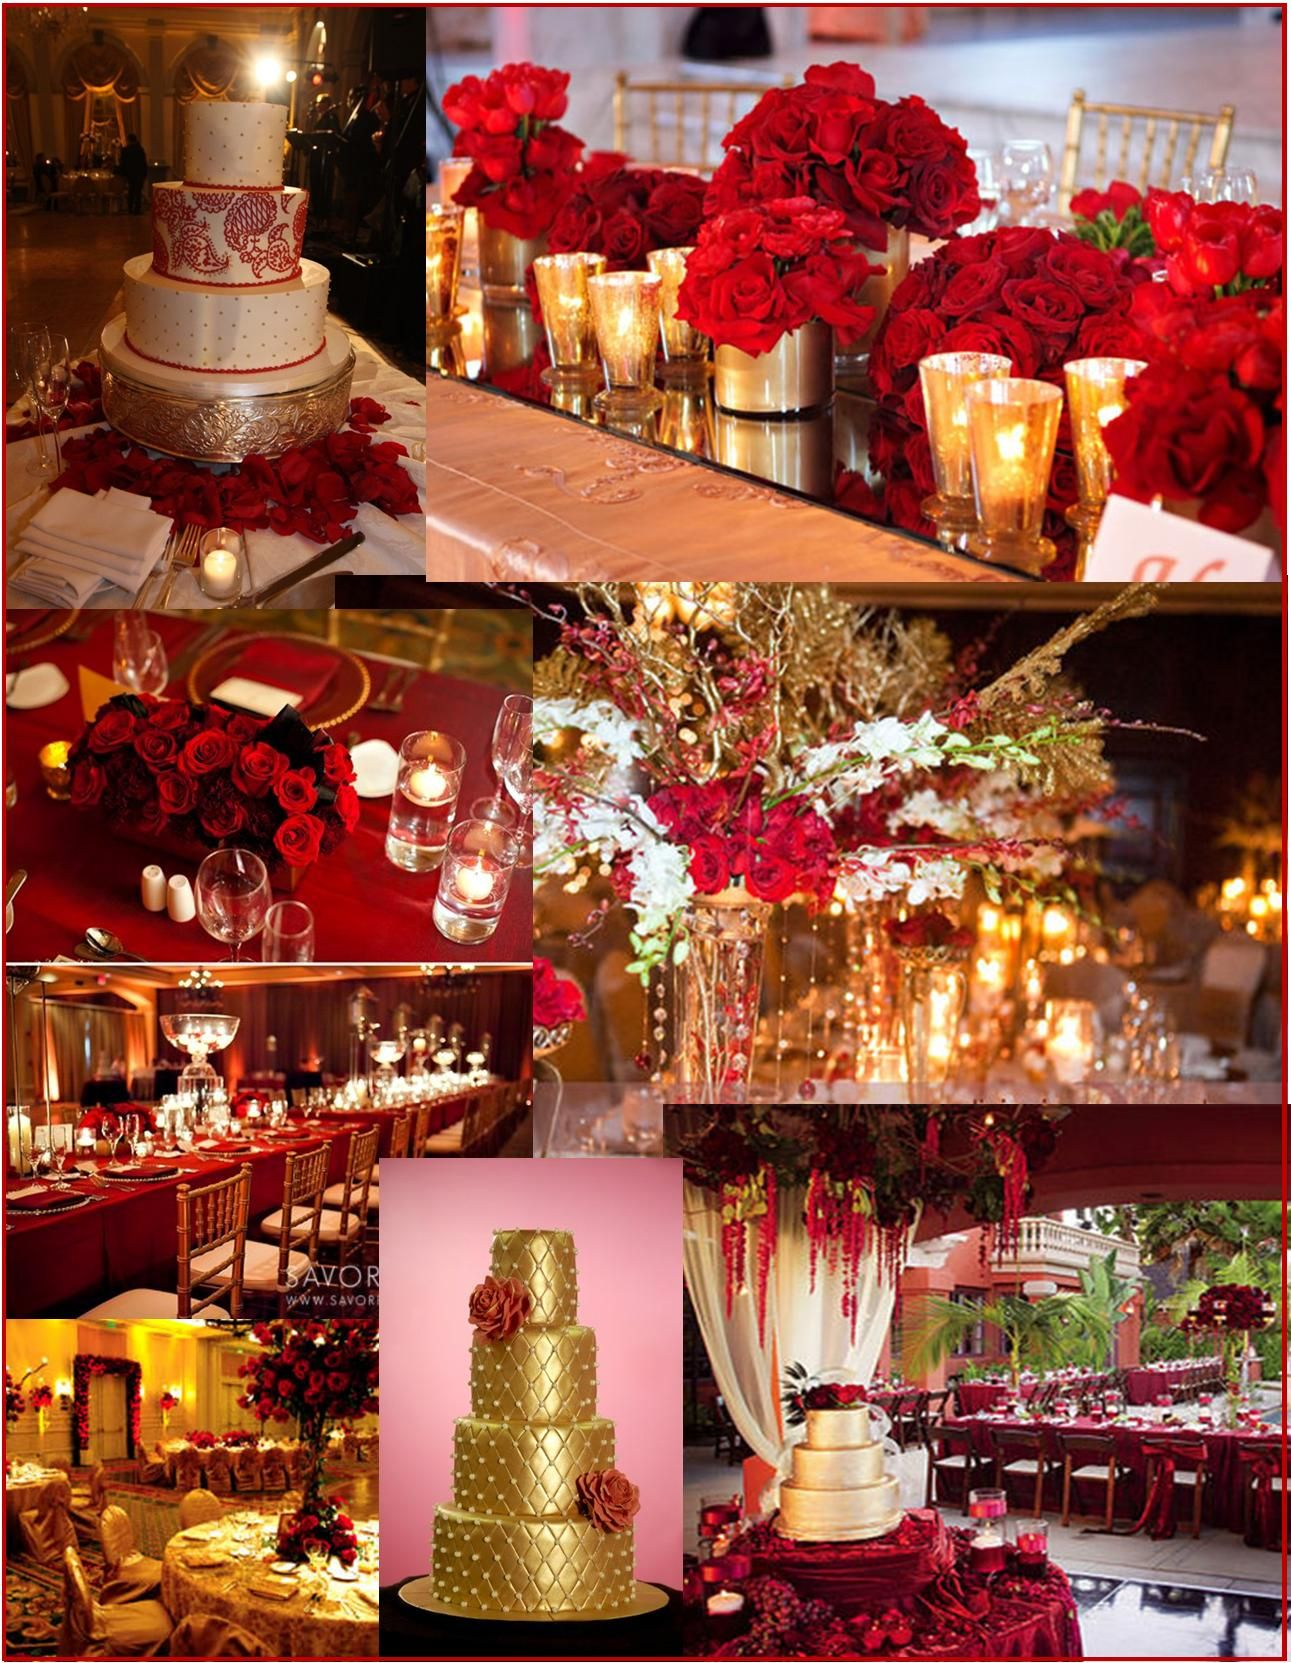 Red and gold wedding and event ideas wedding reception pinterest red and gold wedding and event ideas junglespirit